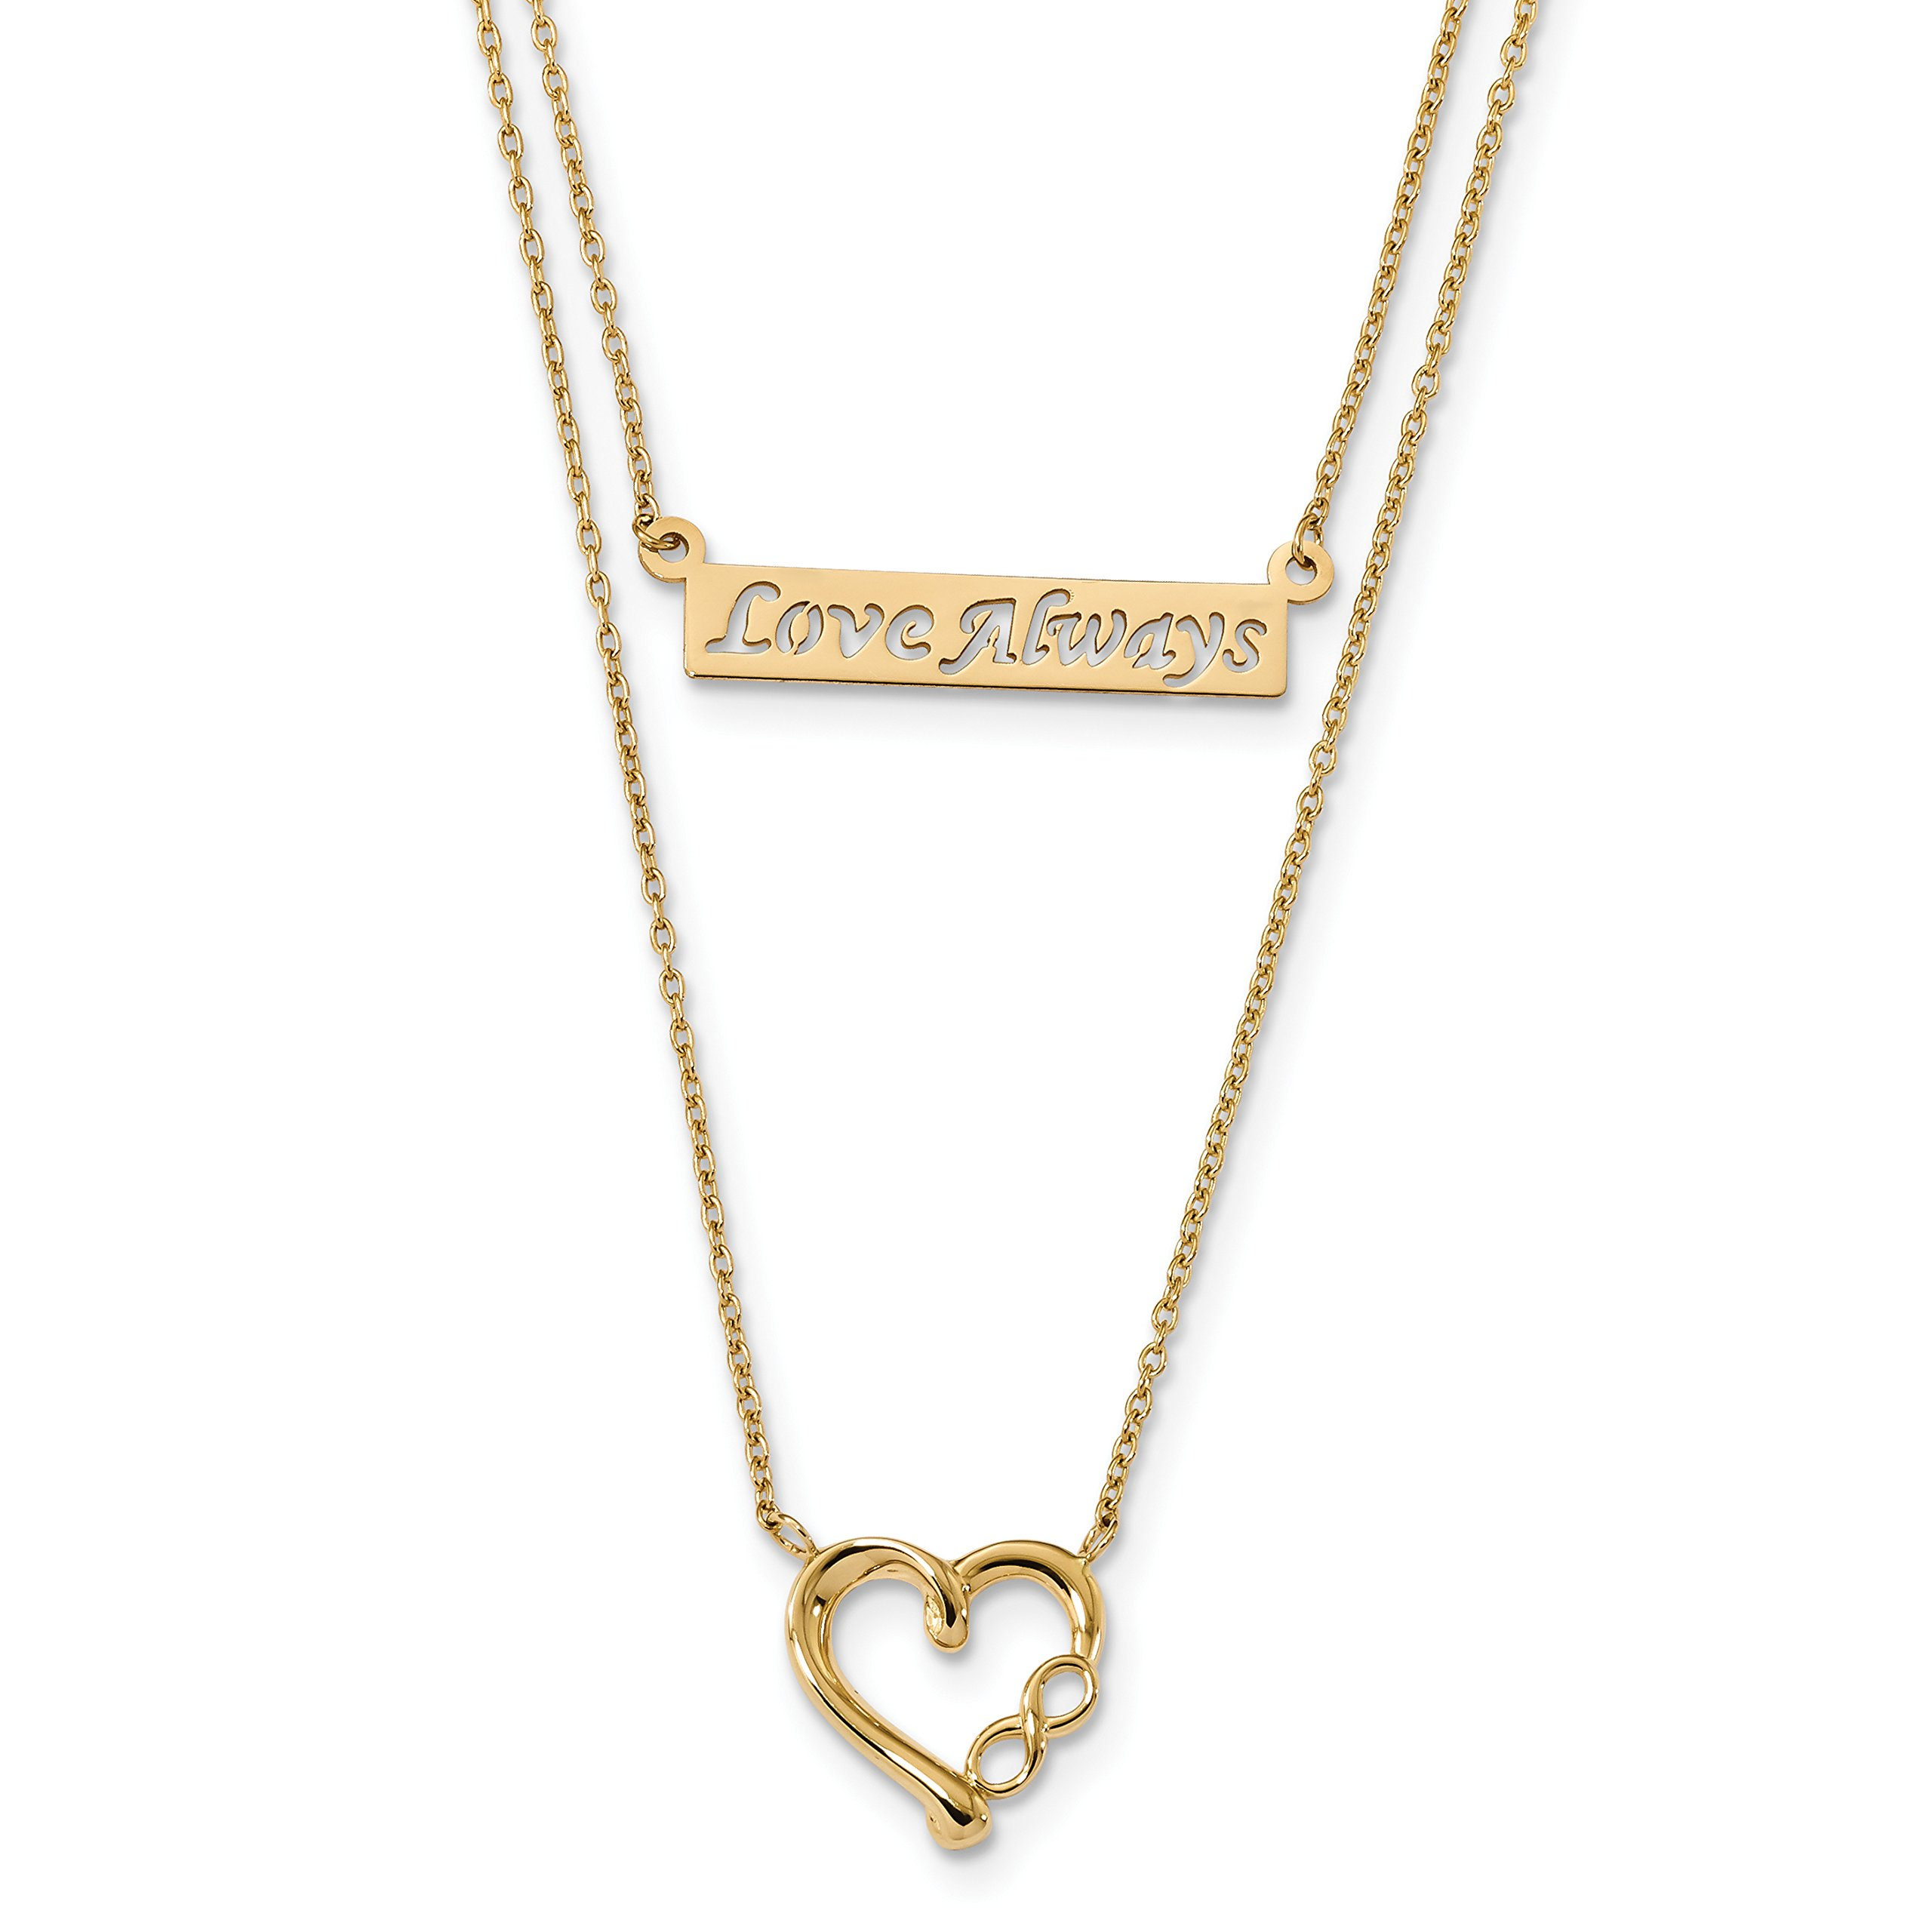 ICE CARATS 14k Yellow Gold Two Strand Love Always Heart Chain Necklace Fancy S/love Fine Jewelry Gift Set For Women Heart